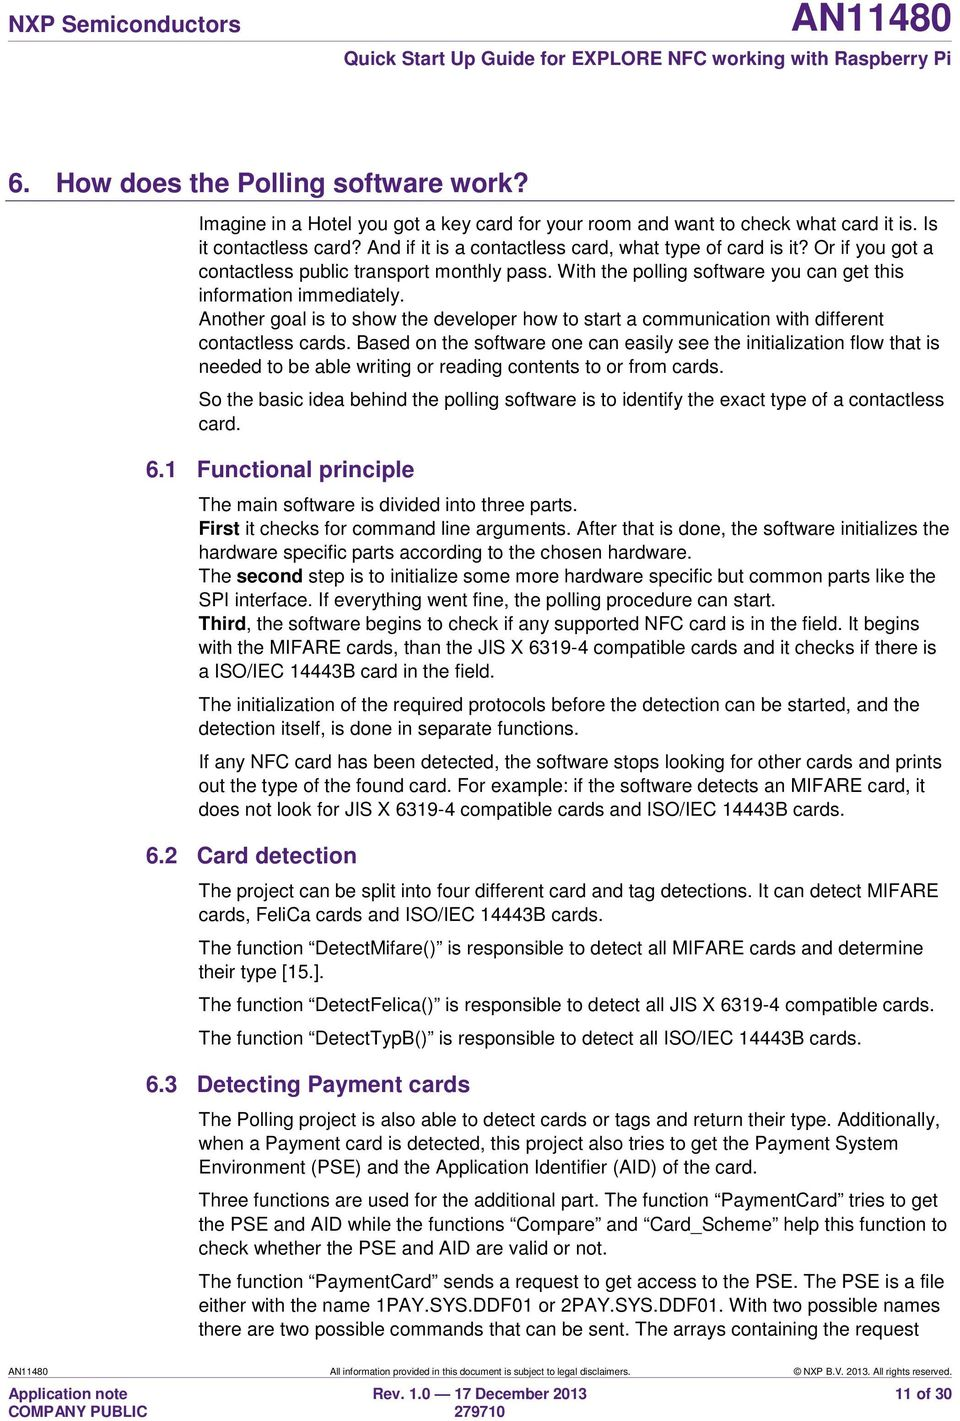 AN Quick Start Up Guide for EXPLORE NFC working with